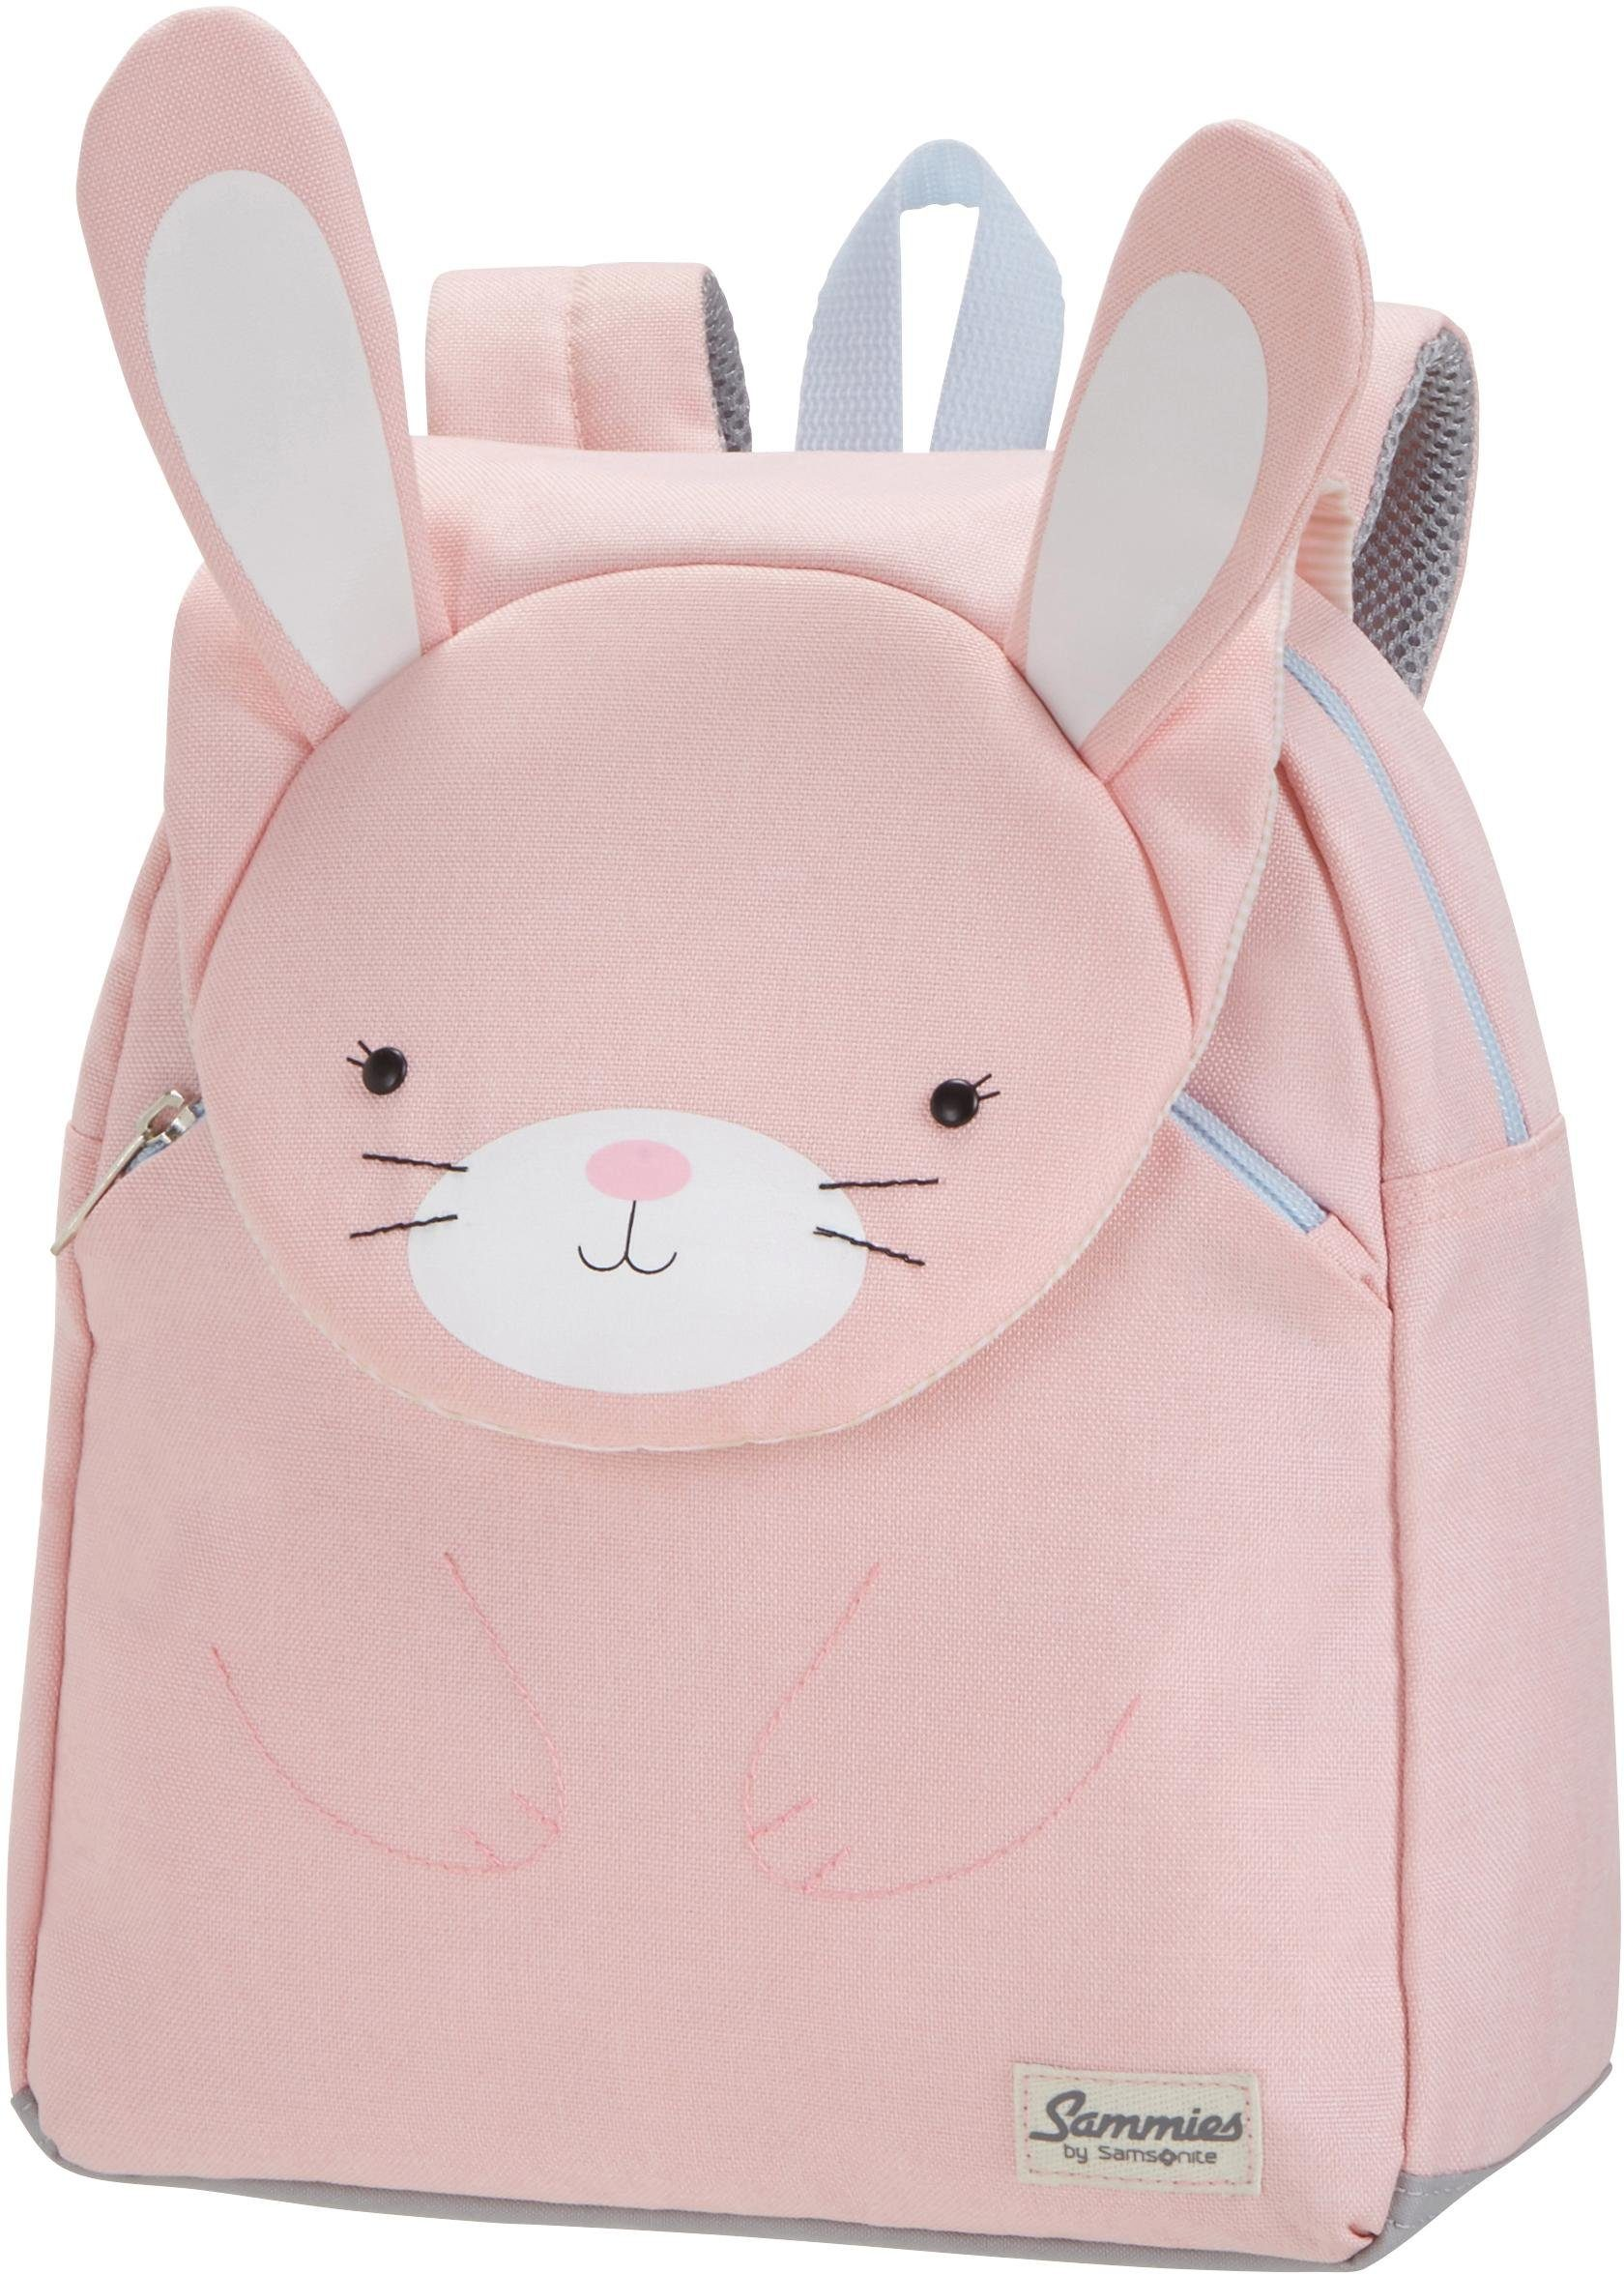 Sammies by Samsonite Kindergartenrucksack, »Happy Sammies, Rabbit Rosie, S«